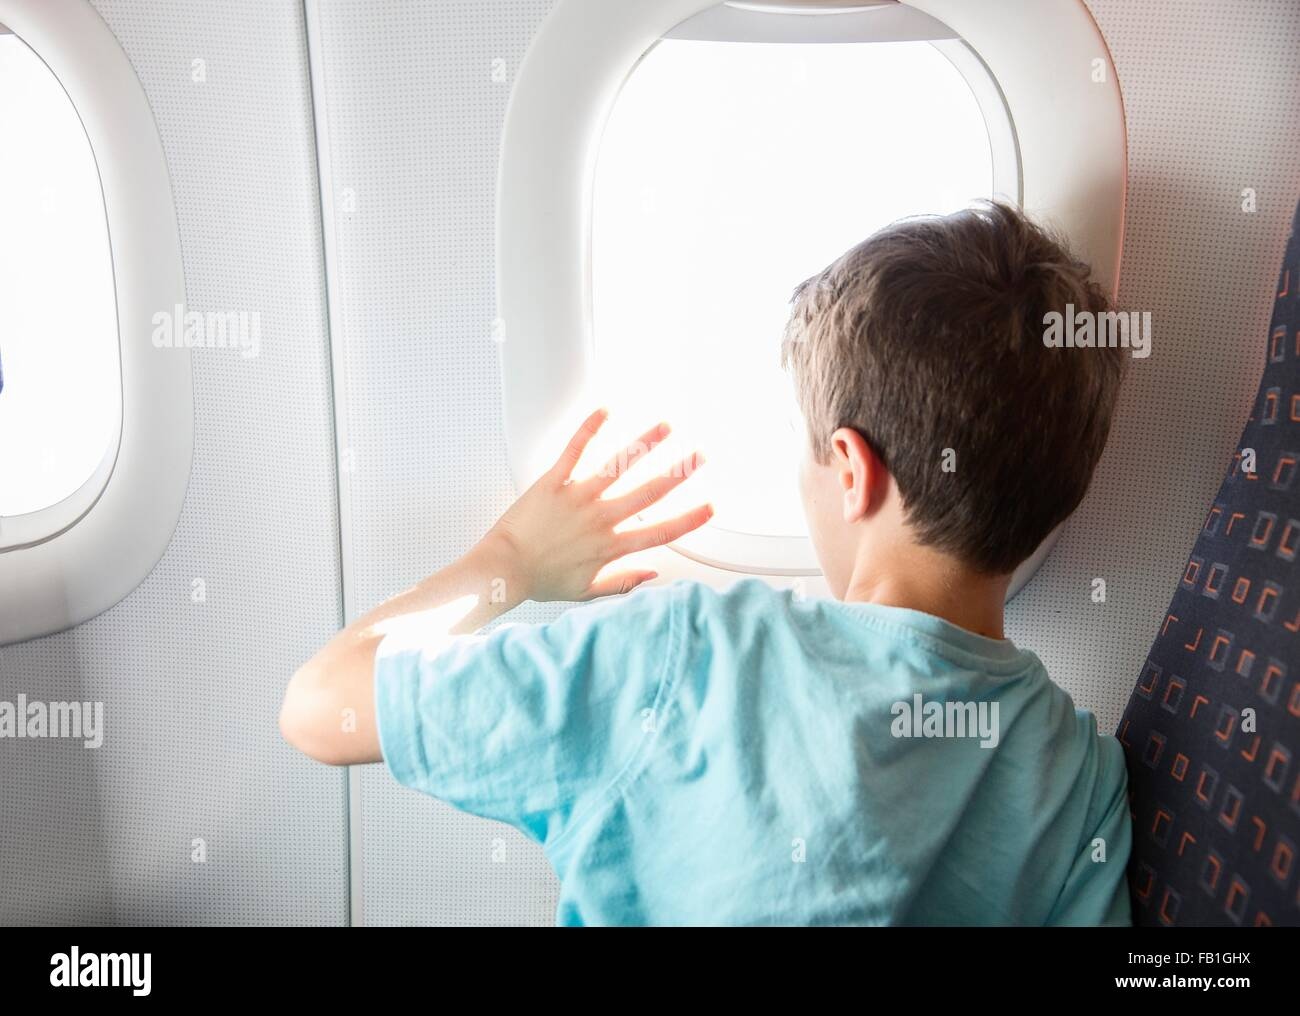 Rear view of boy looking and waving through airplane window - Stock Image